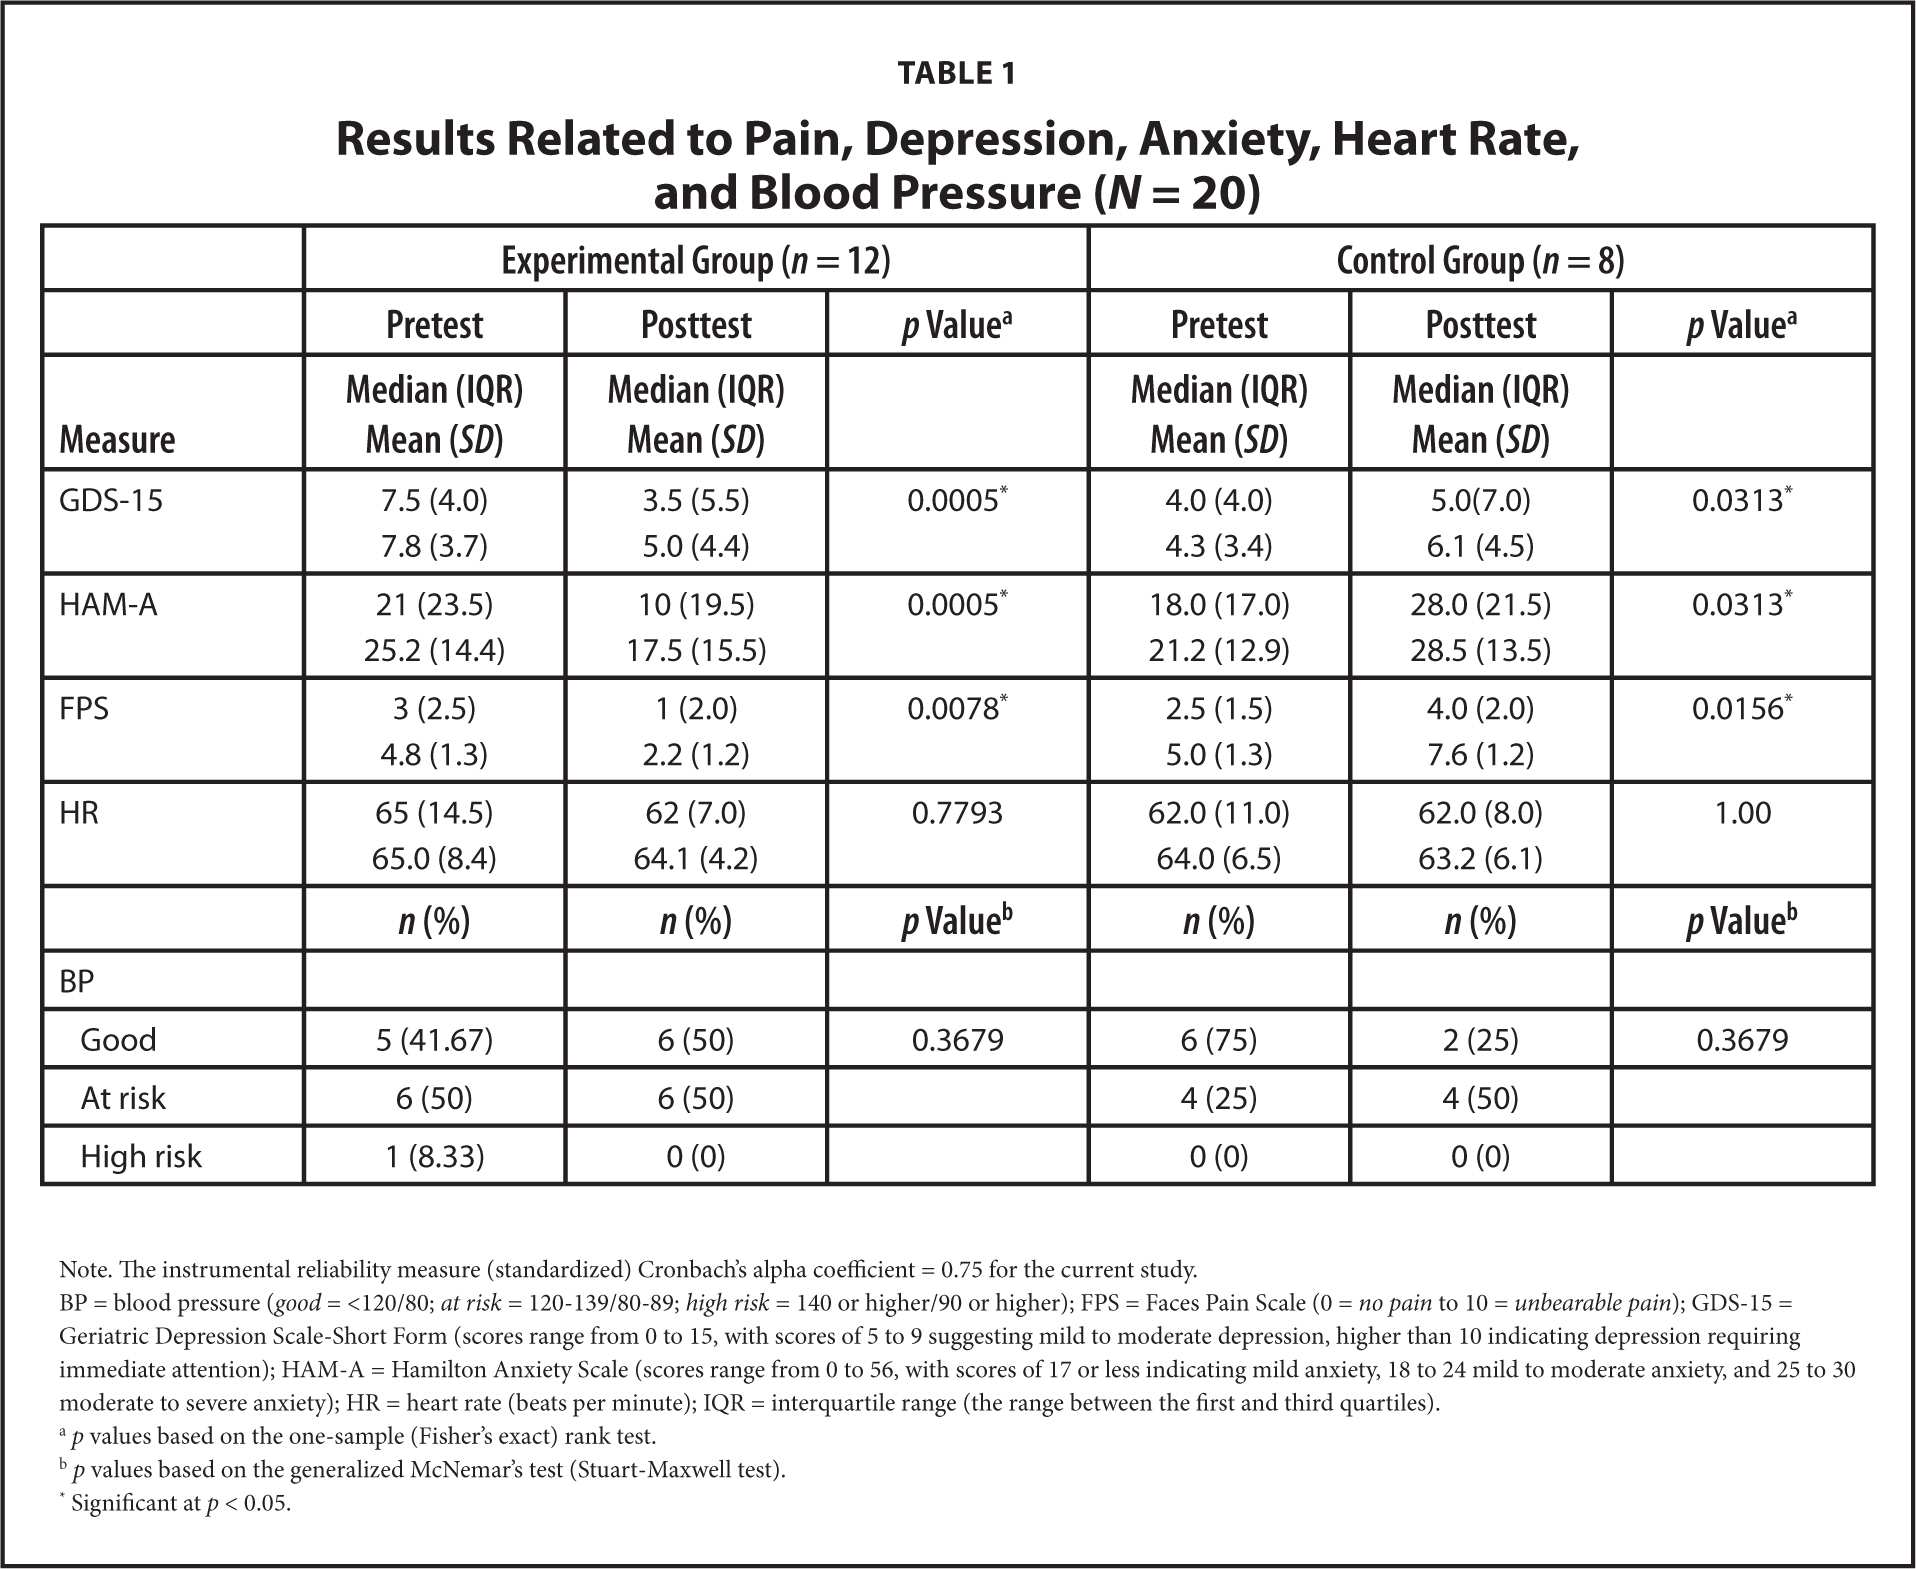 Results Related to Pain, Depression, Anxiety, Heart Rate, and Blood Pressure (N = 20)